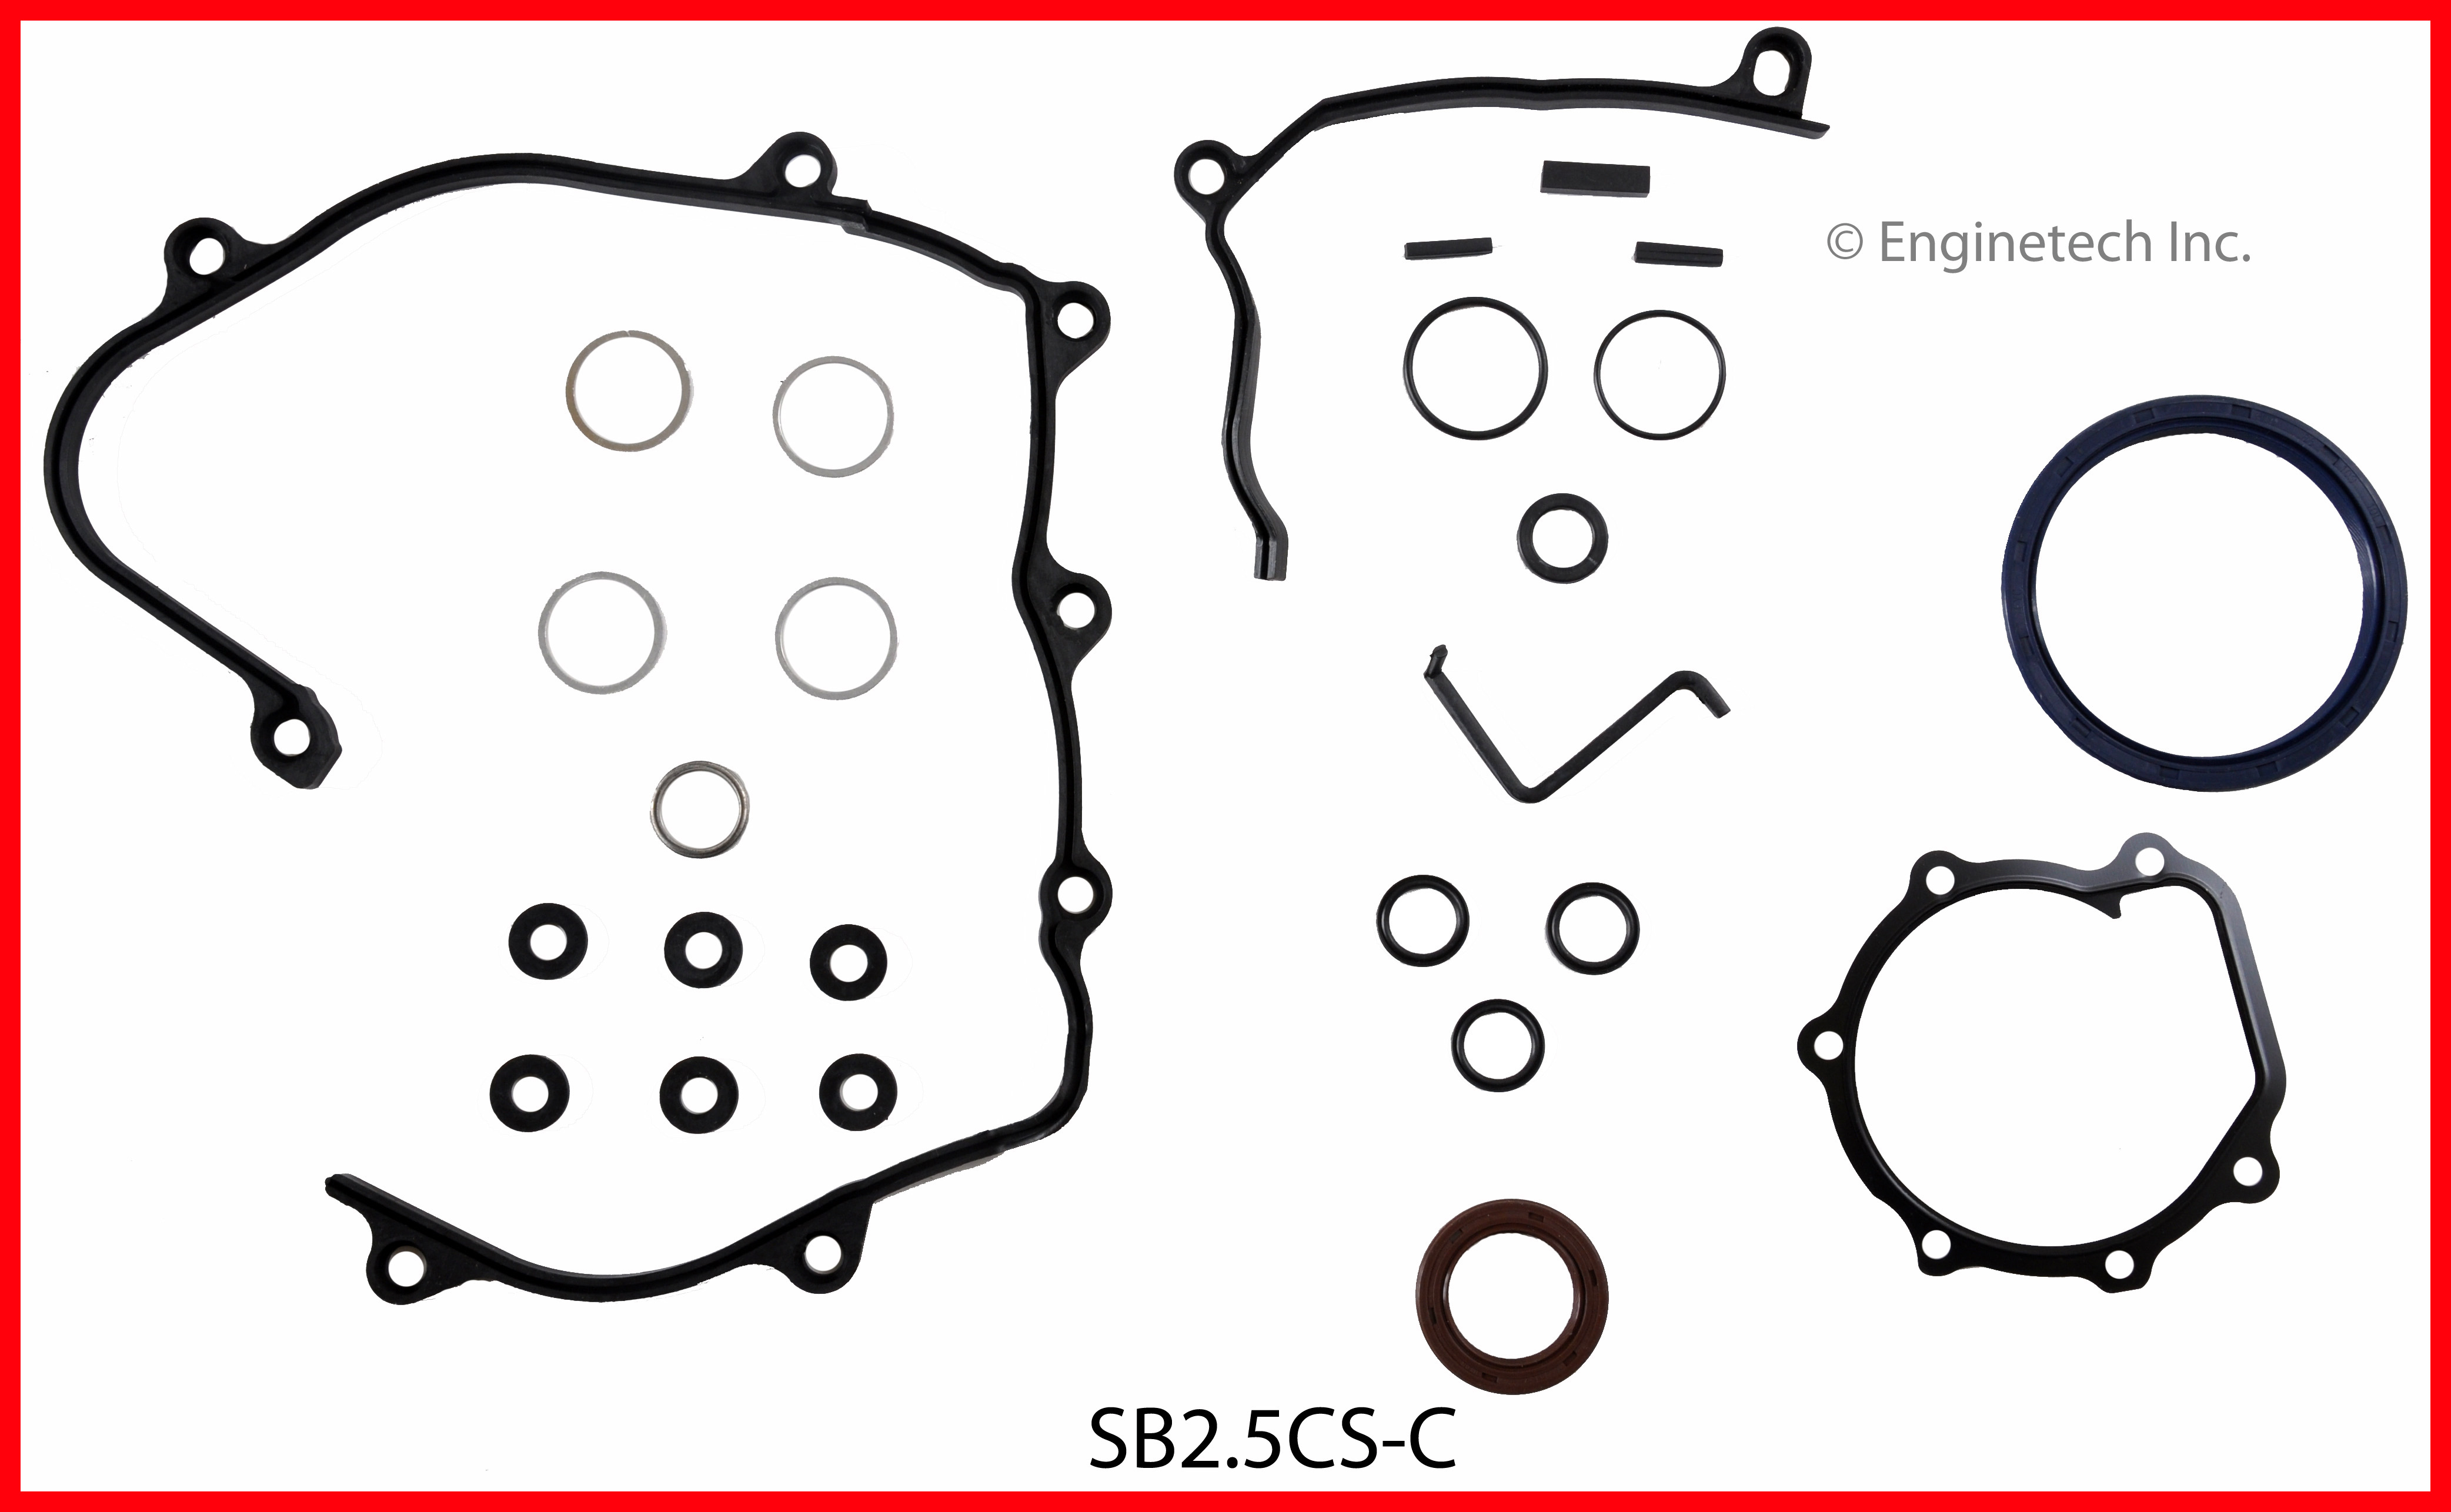 SB2.5CS-C Gasket Set - Lower Enginetech